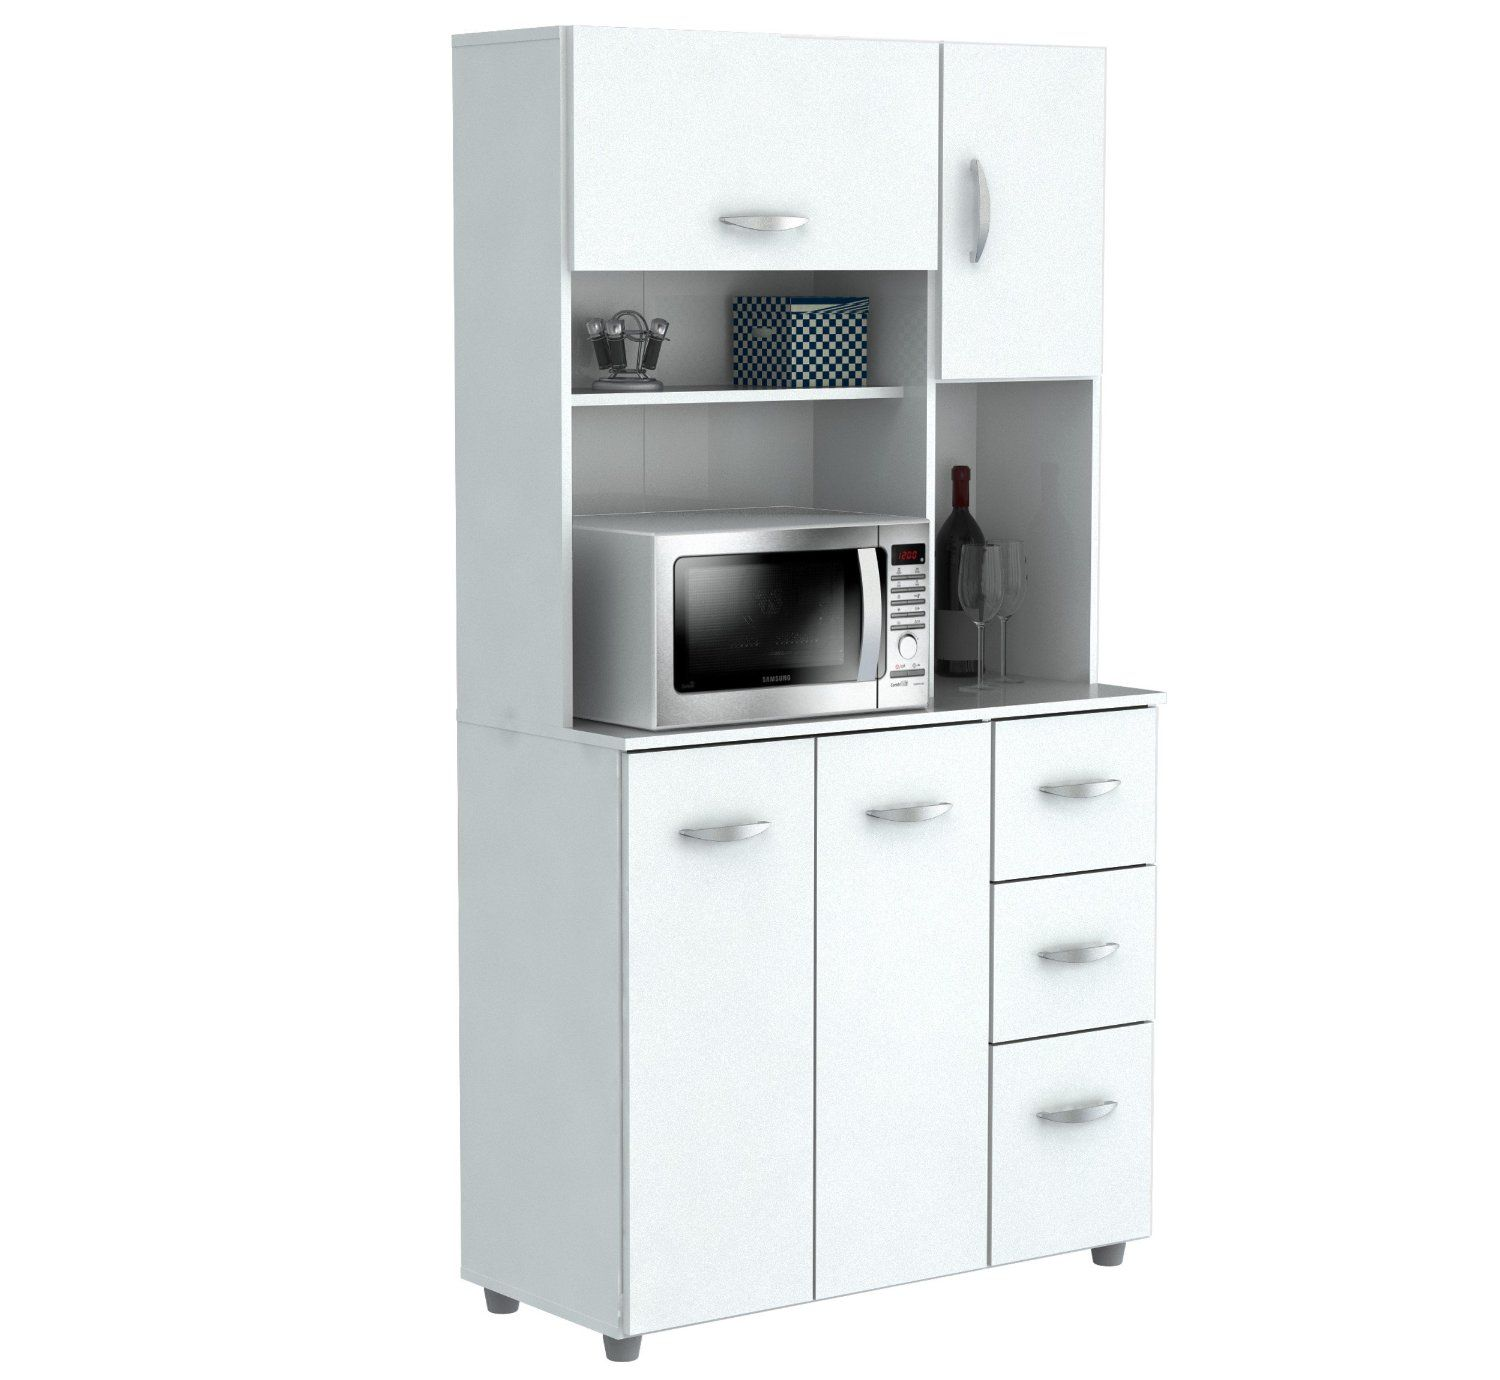 microwave carts with storage ikea | Office | Pinterest | Muebles ...